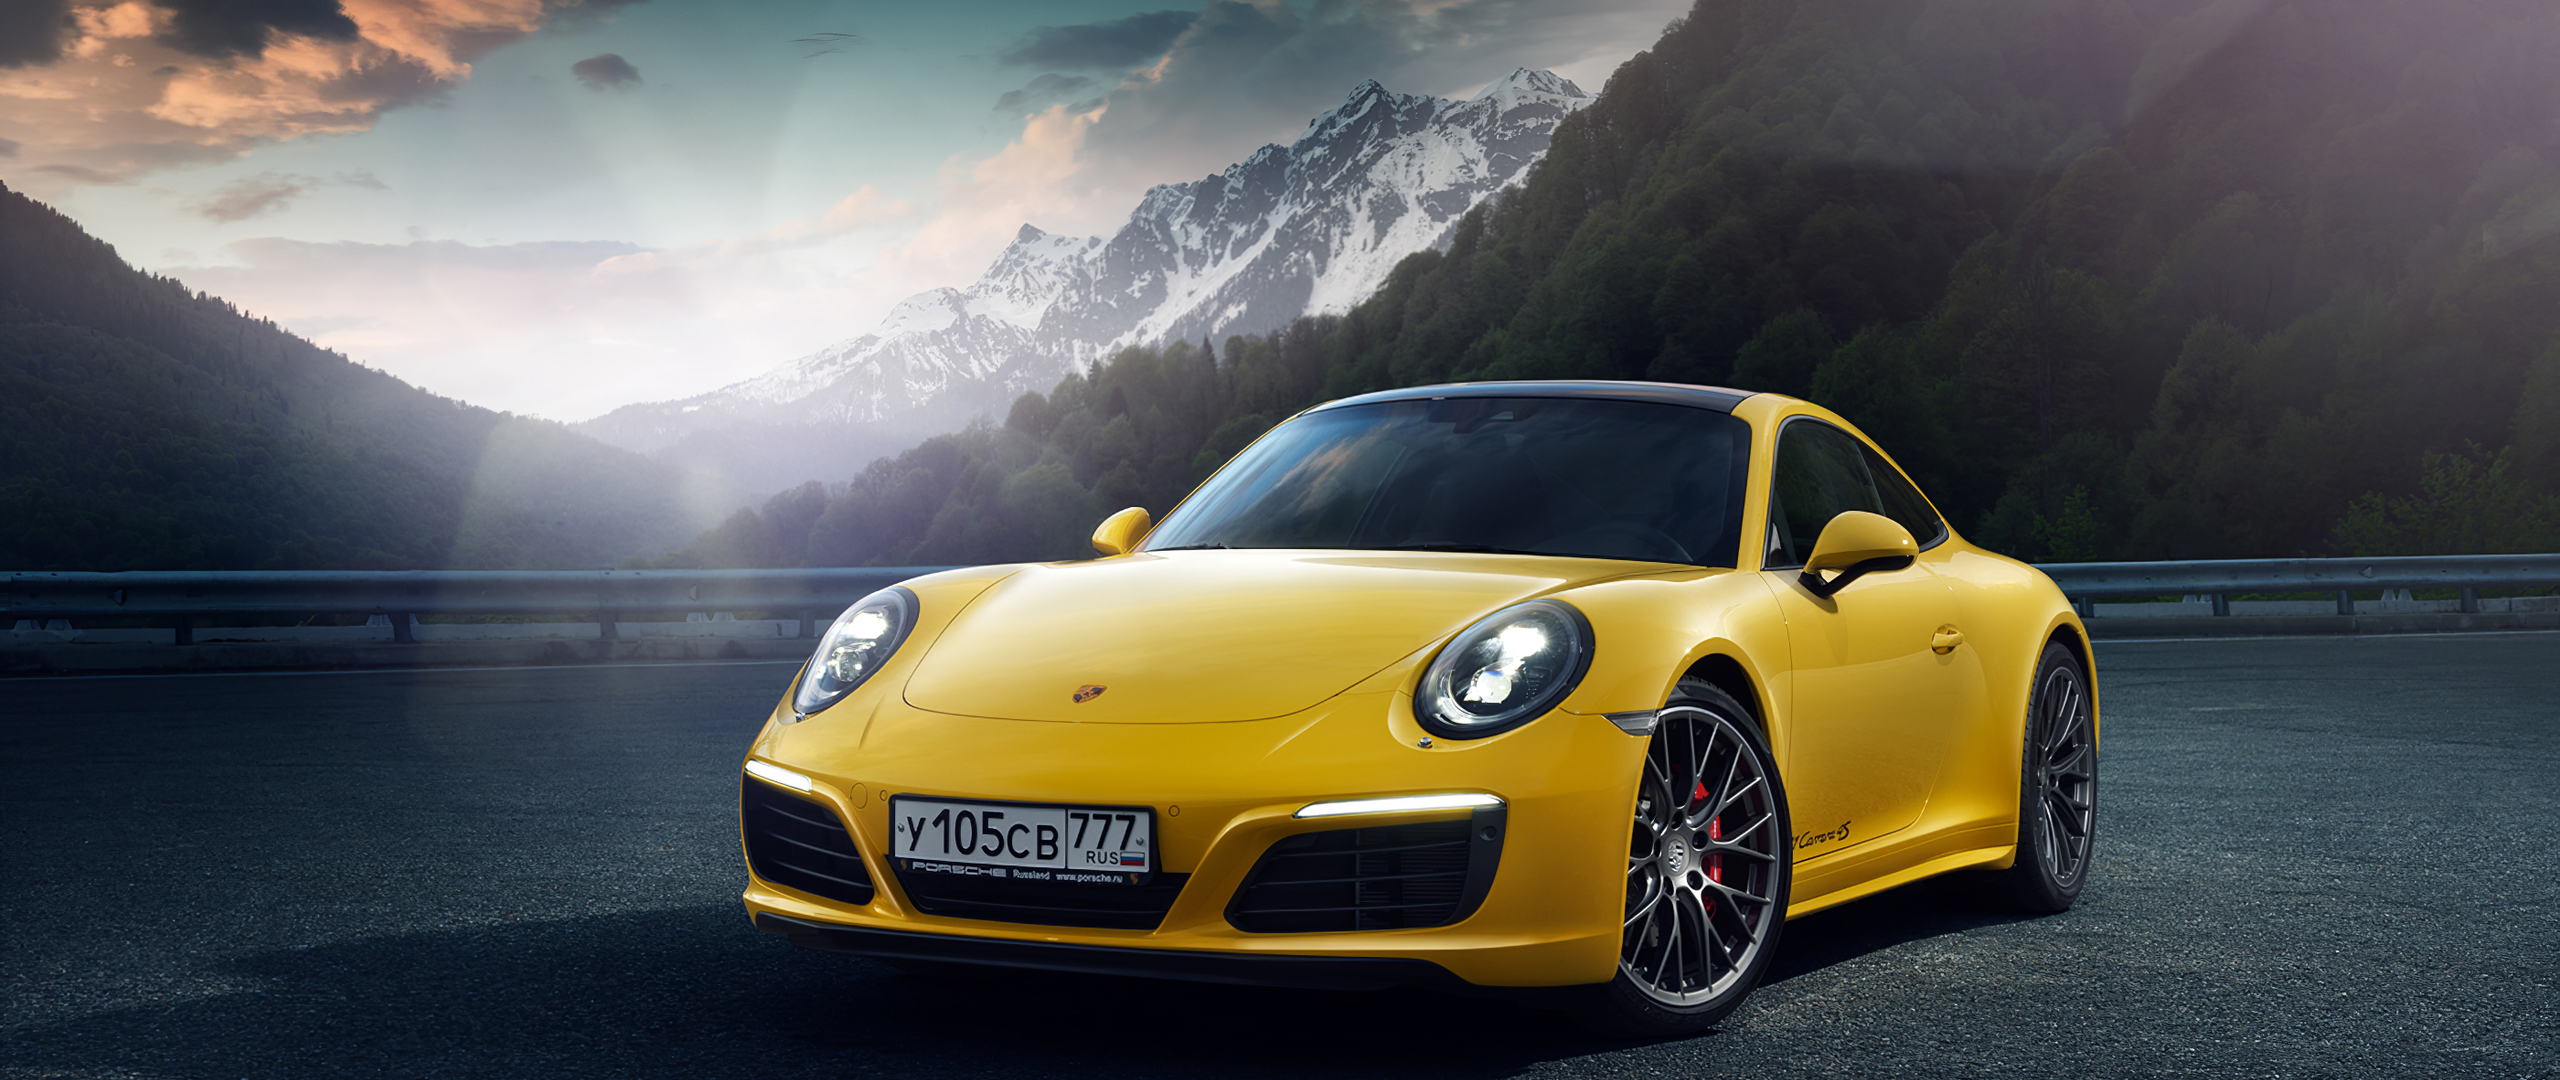 2560x1080 Yellow Porsche 918 2560x1080 Resolution Hd 4k Wallpapers Images Backgrounds Photos And Pictures